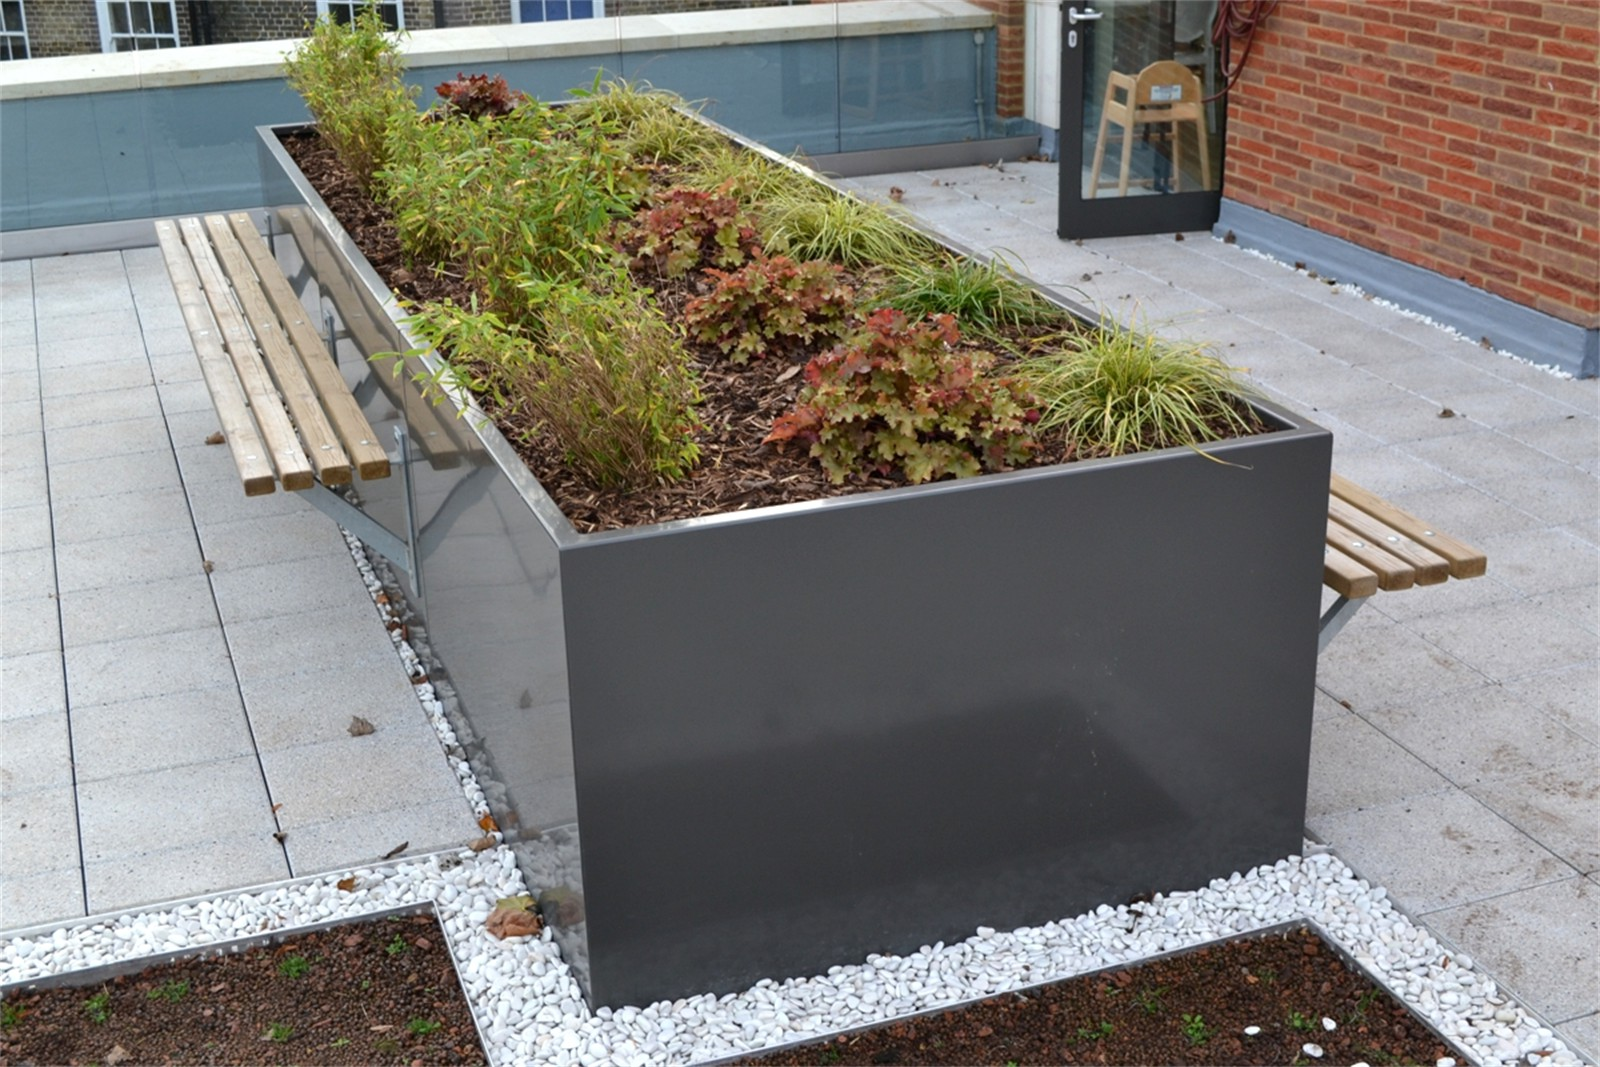 c121v09 - Stratum planter walling with Bexley planter benches